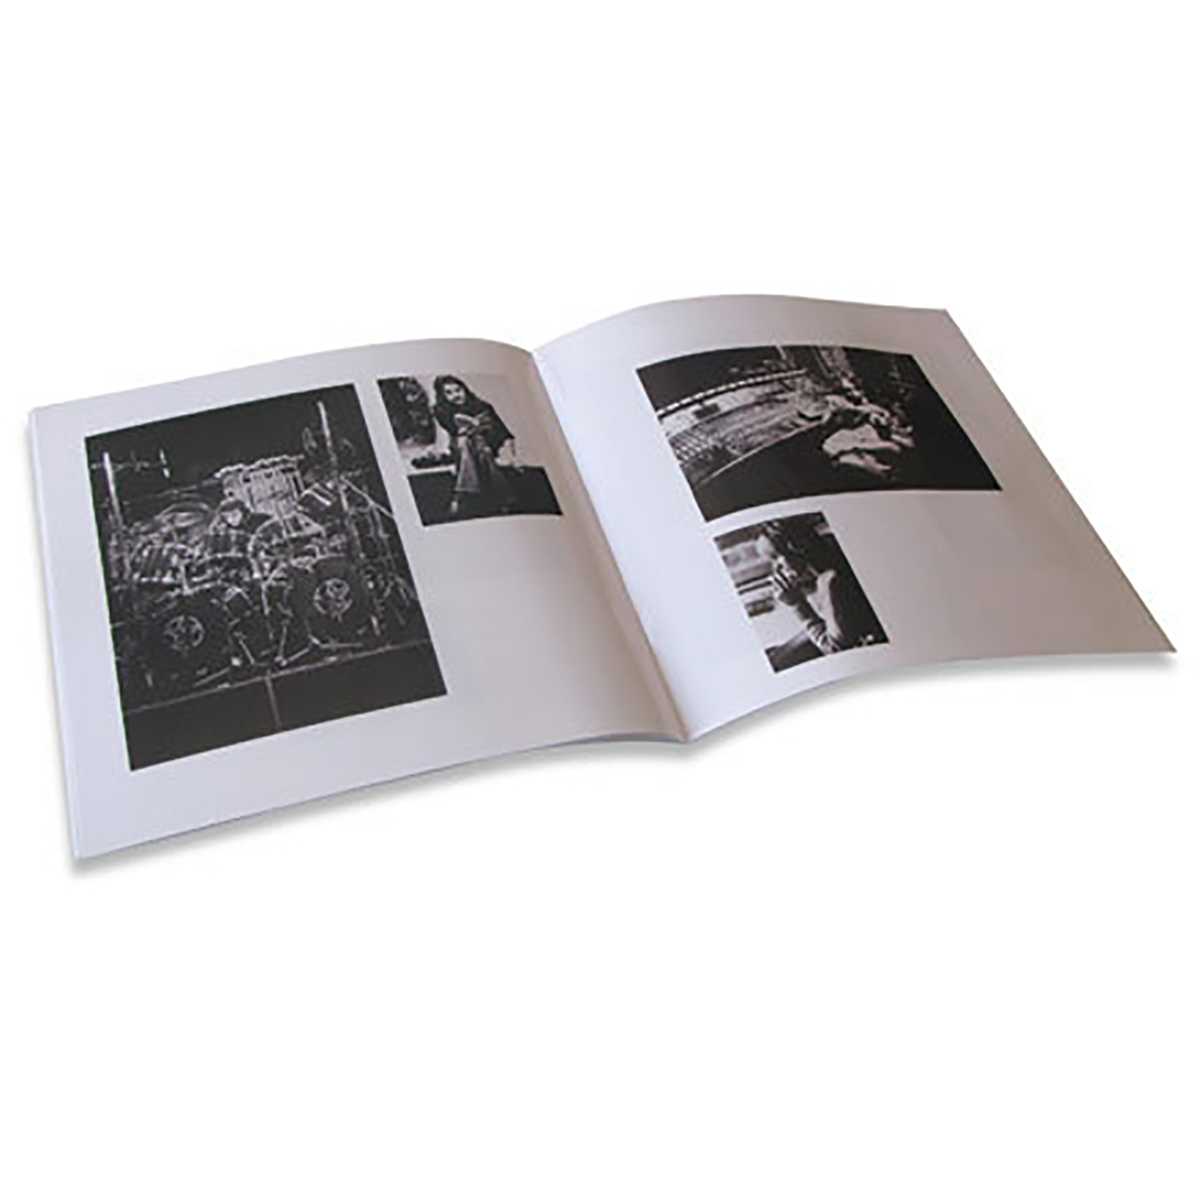 Permanent Waves Tourbook